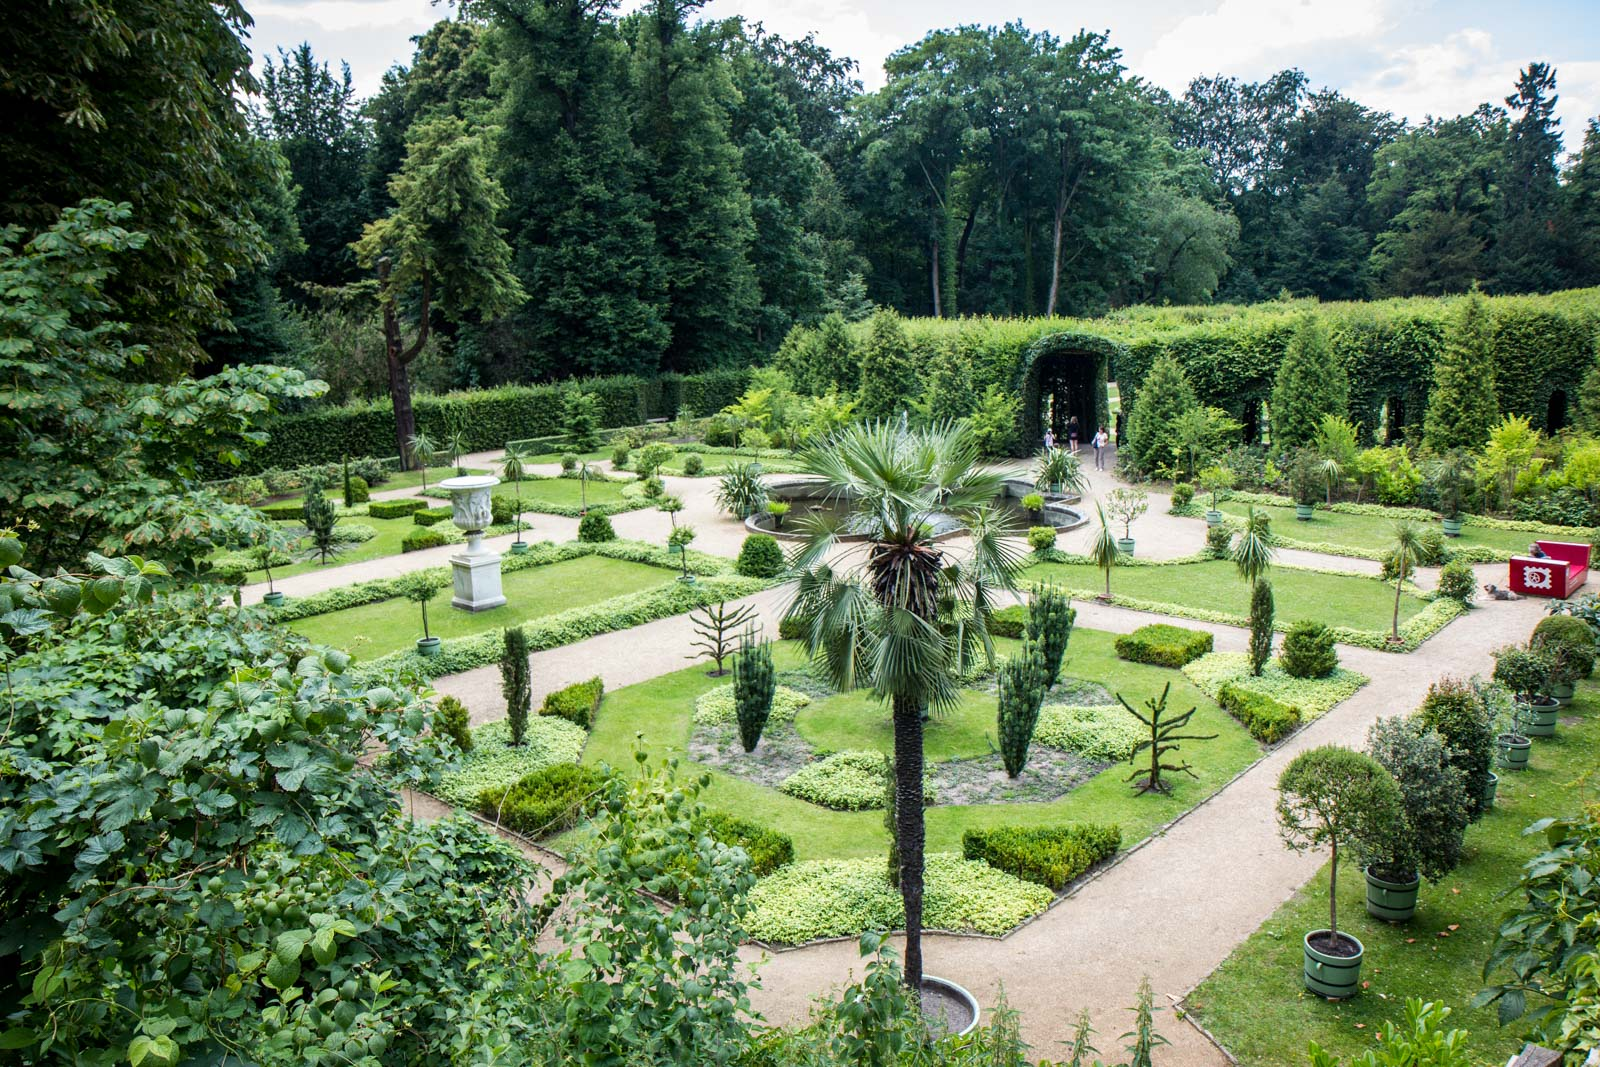 Palaces and parks of Potsdam, Germany